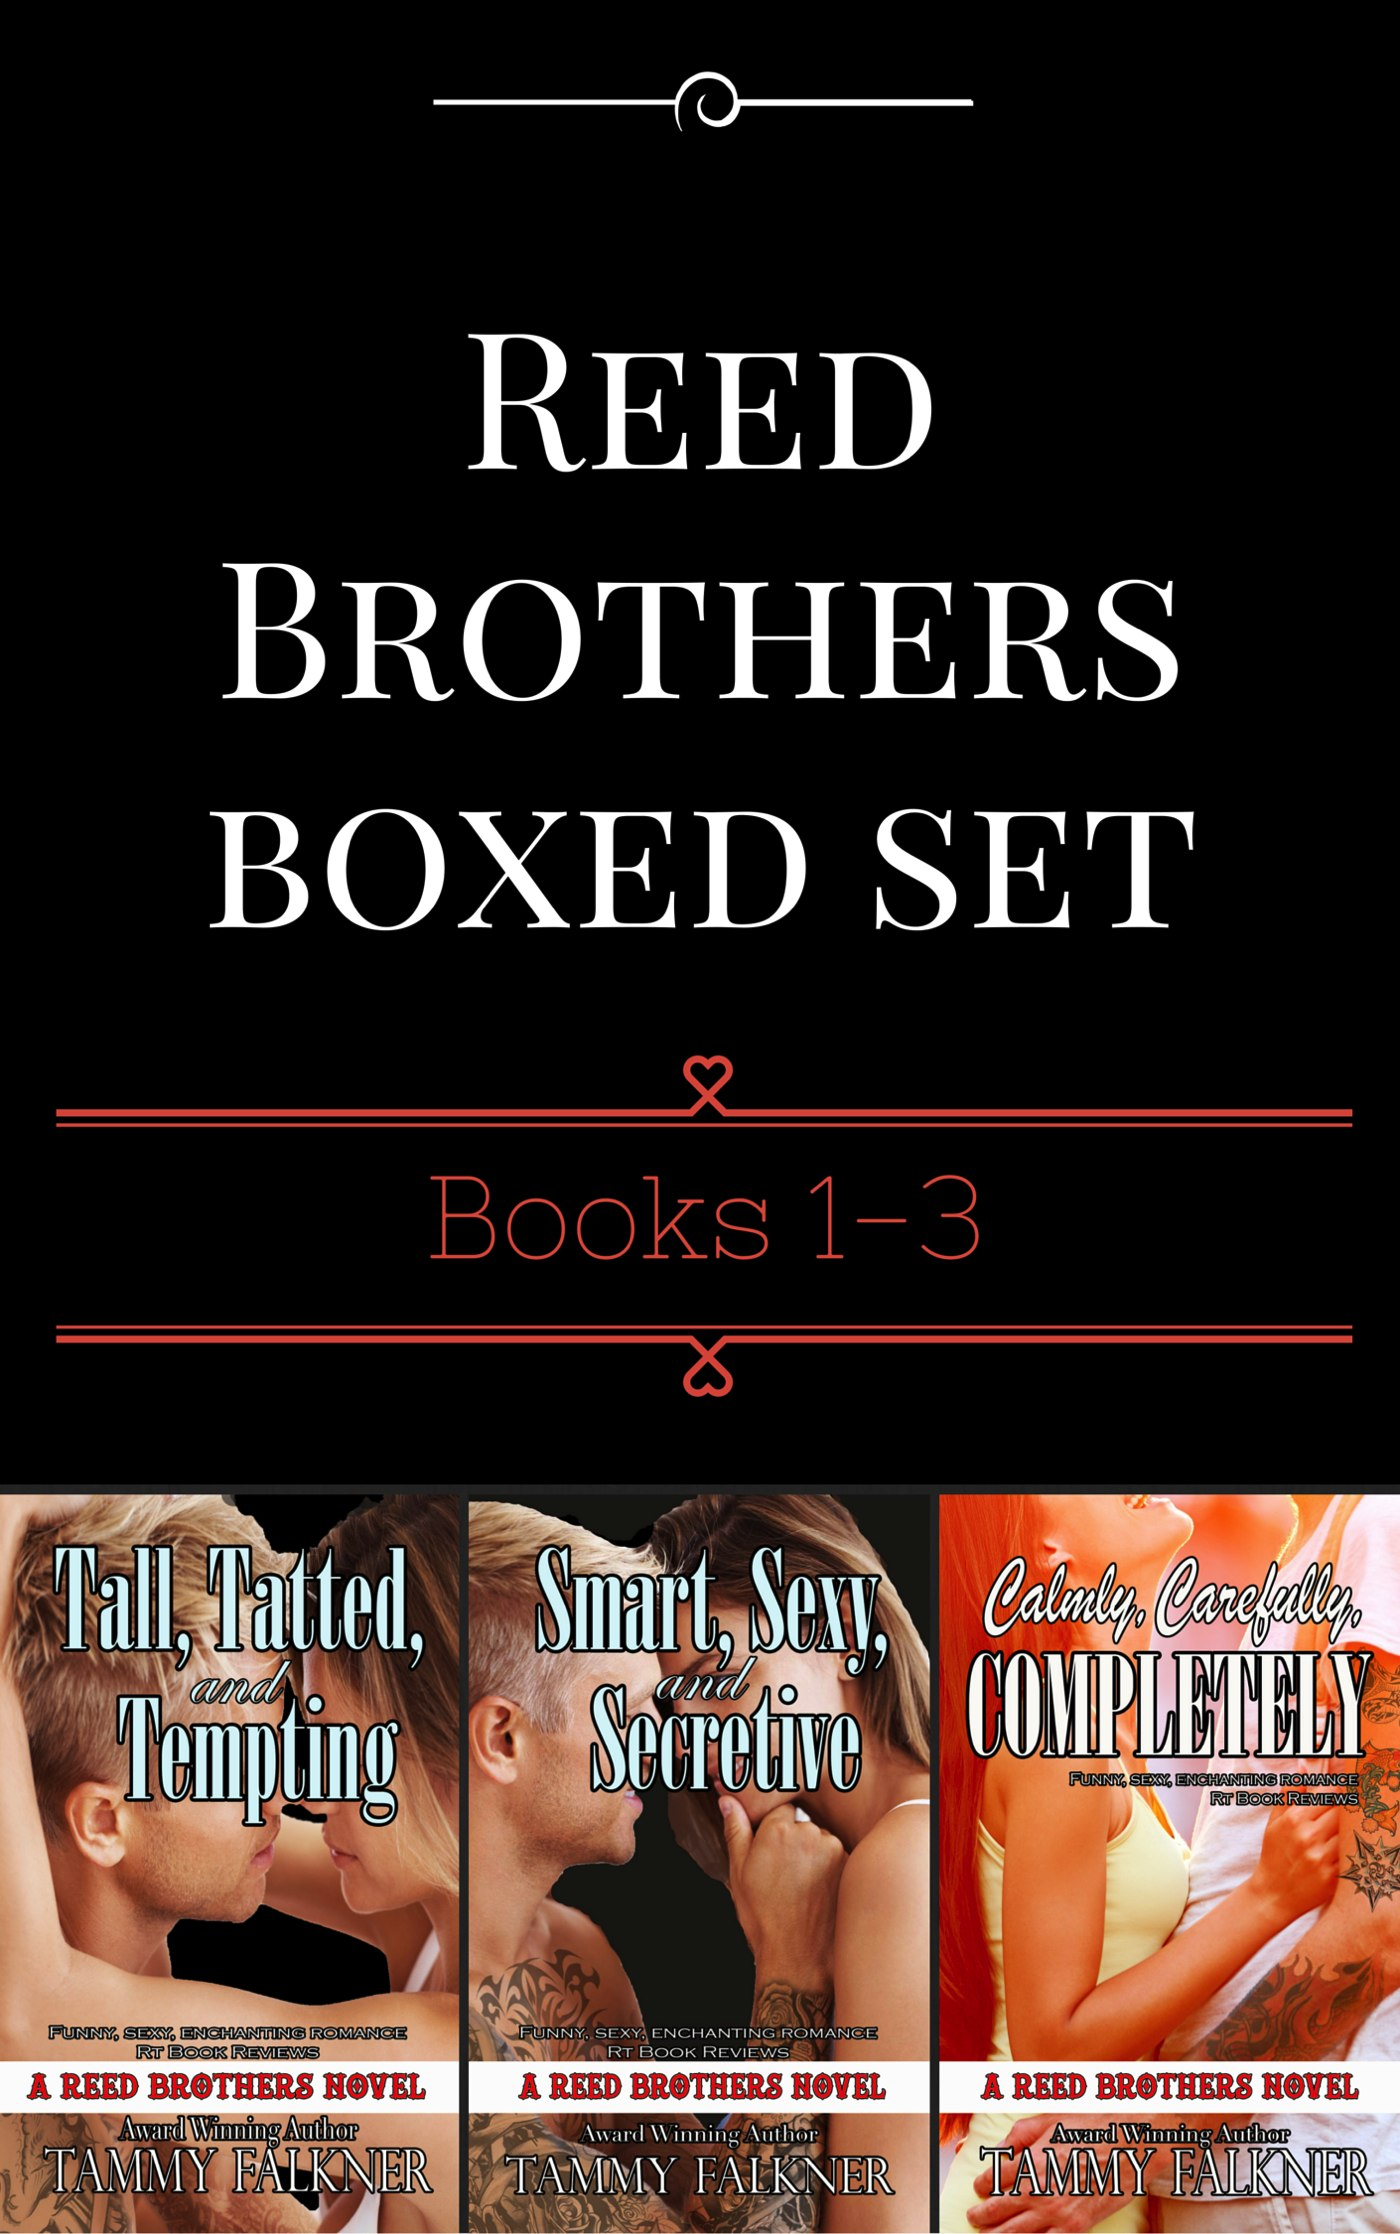 Reed-Brothers-Boxed-Set-1-3-Generic.jpg